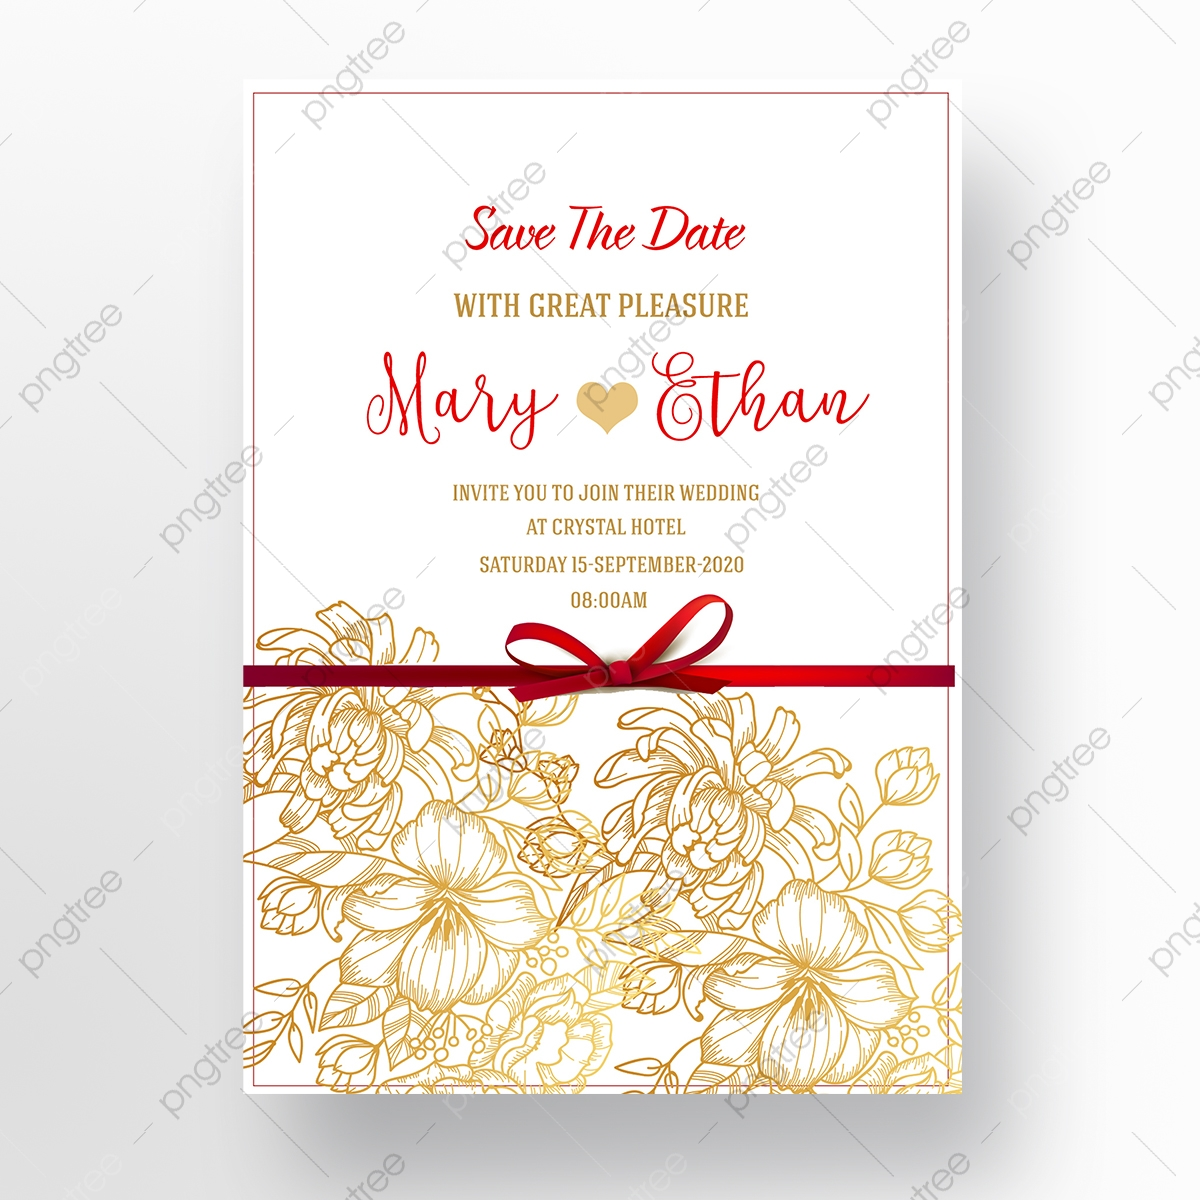 Red Wedding Invitation Template Download on Pngtree